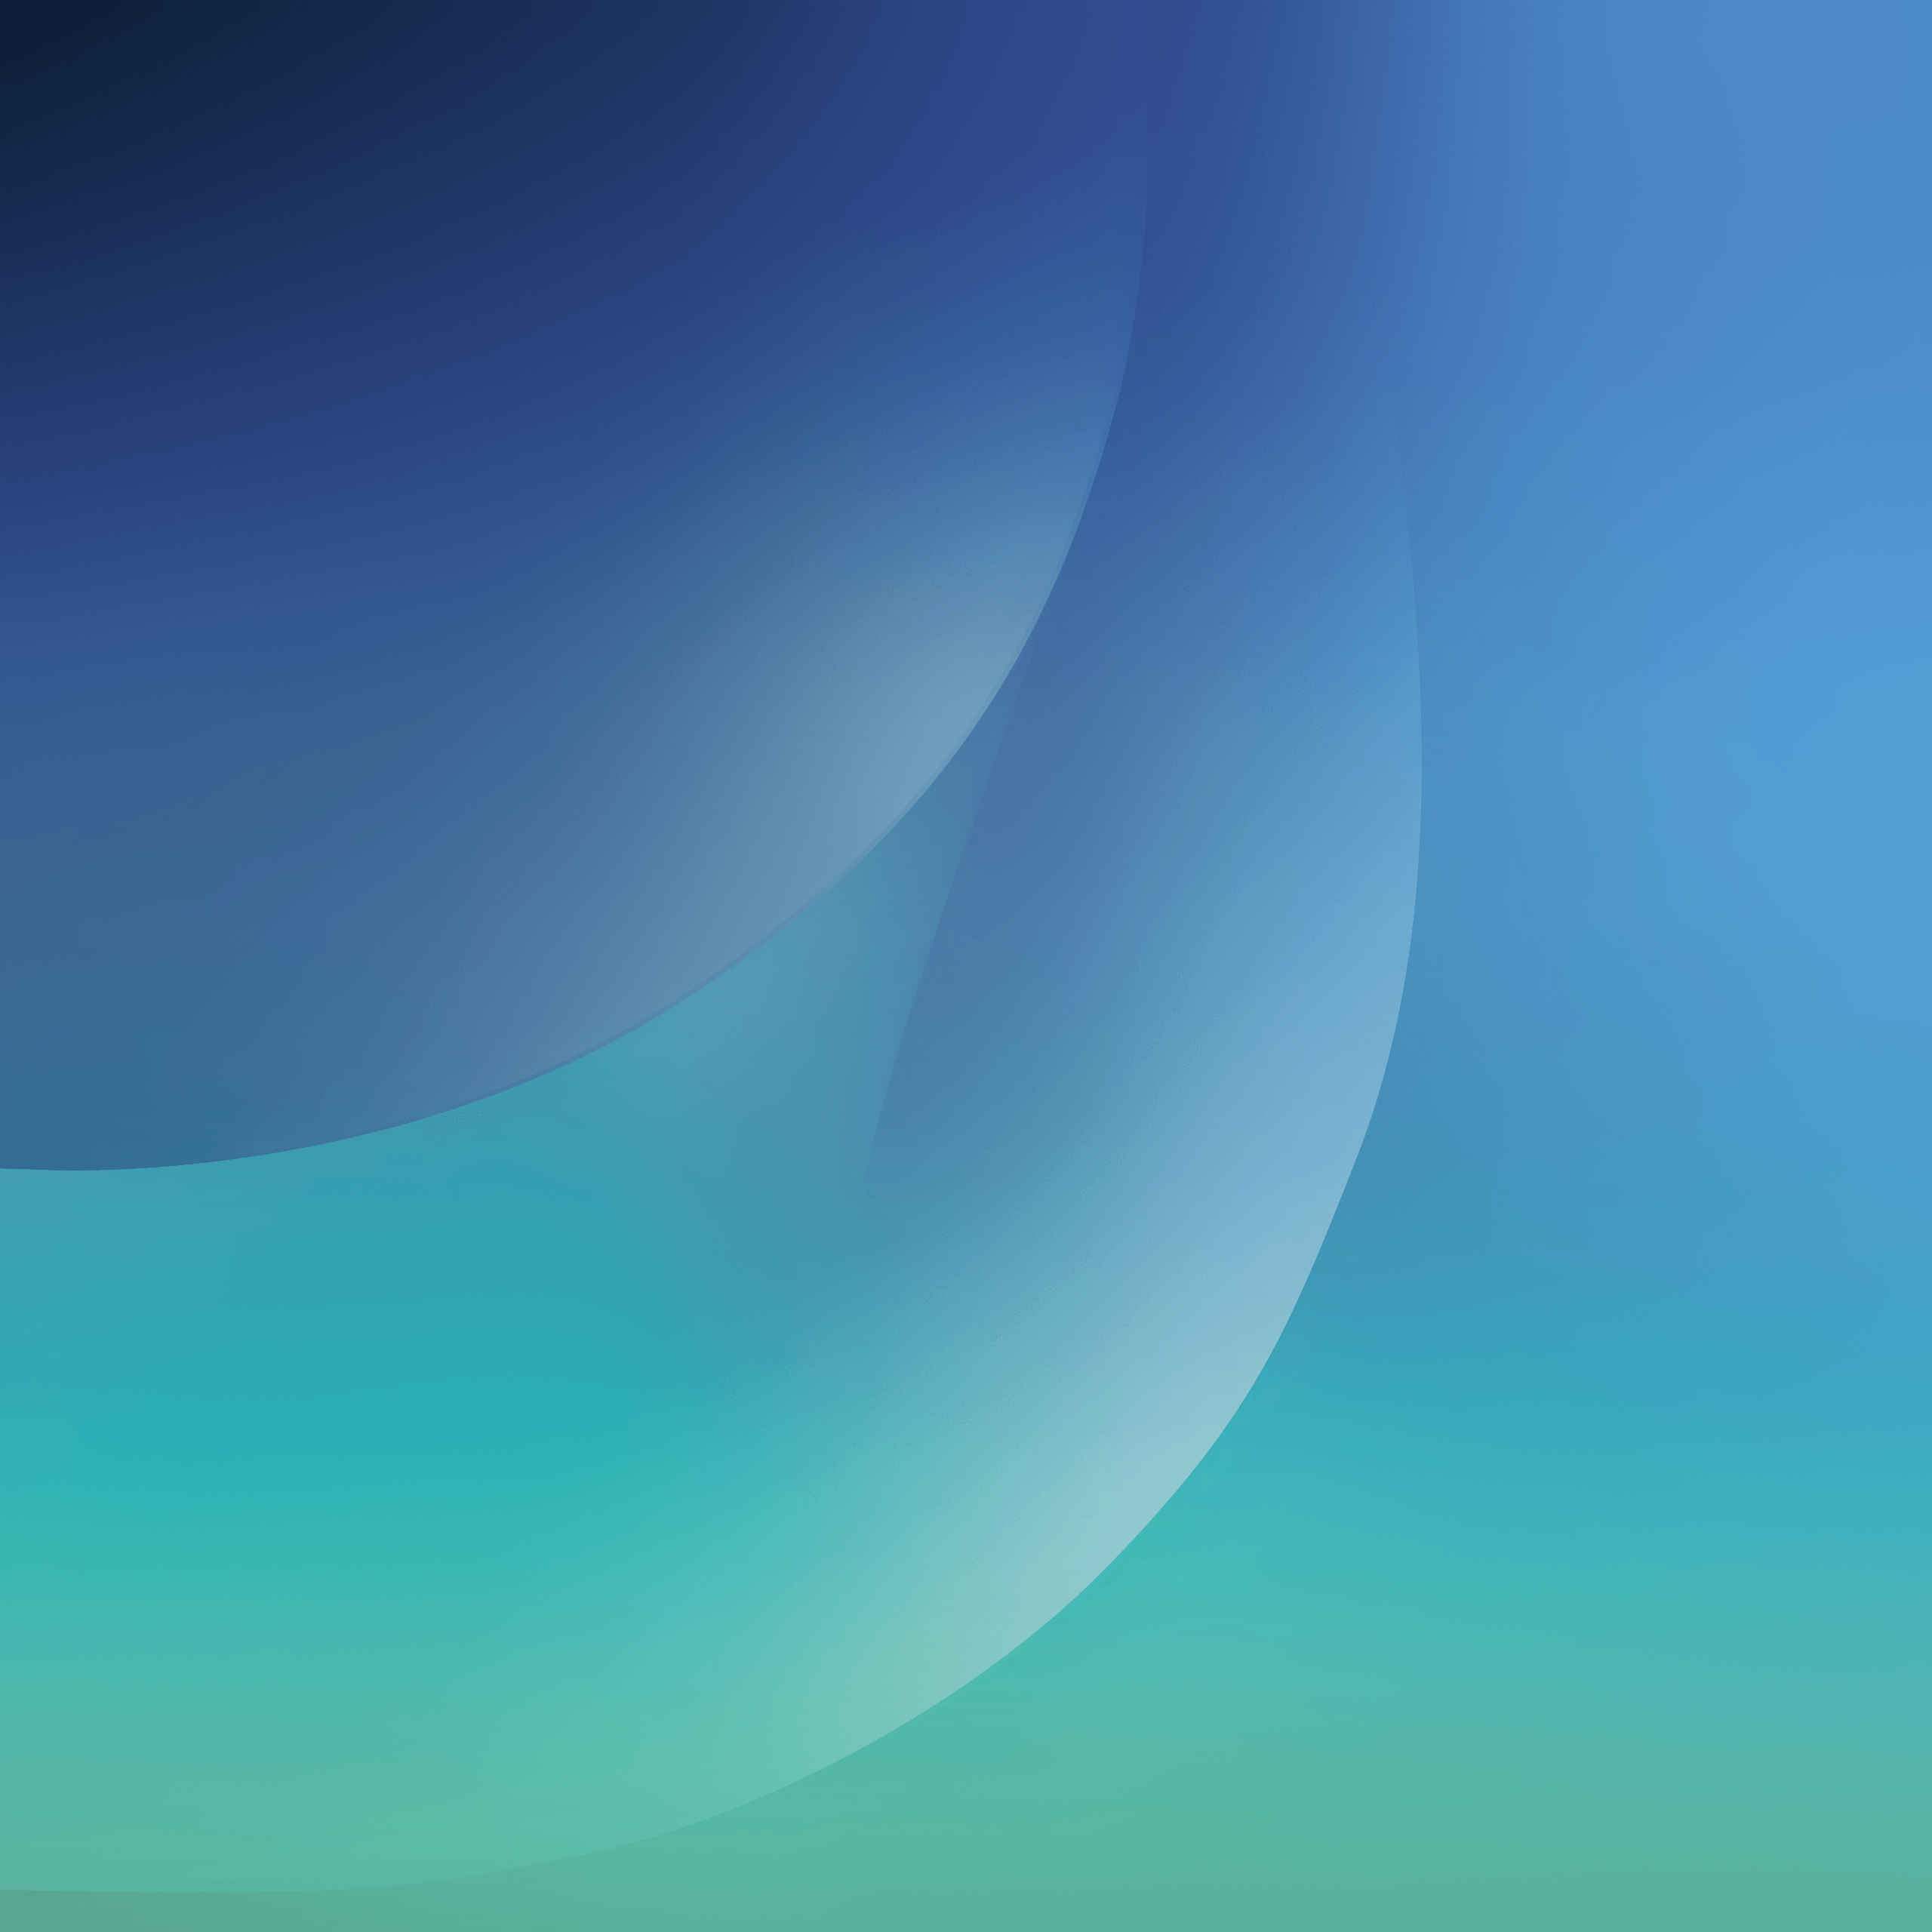 Oppo F1 Plus Wallpapers - Wallpaper Cave